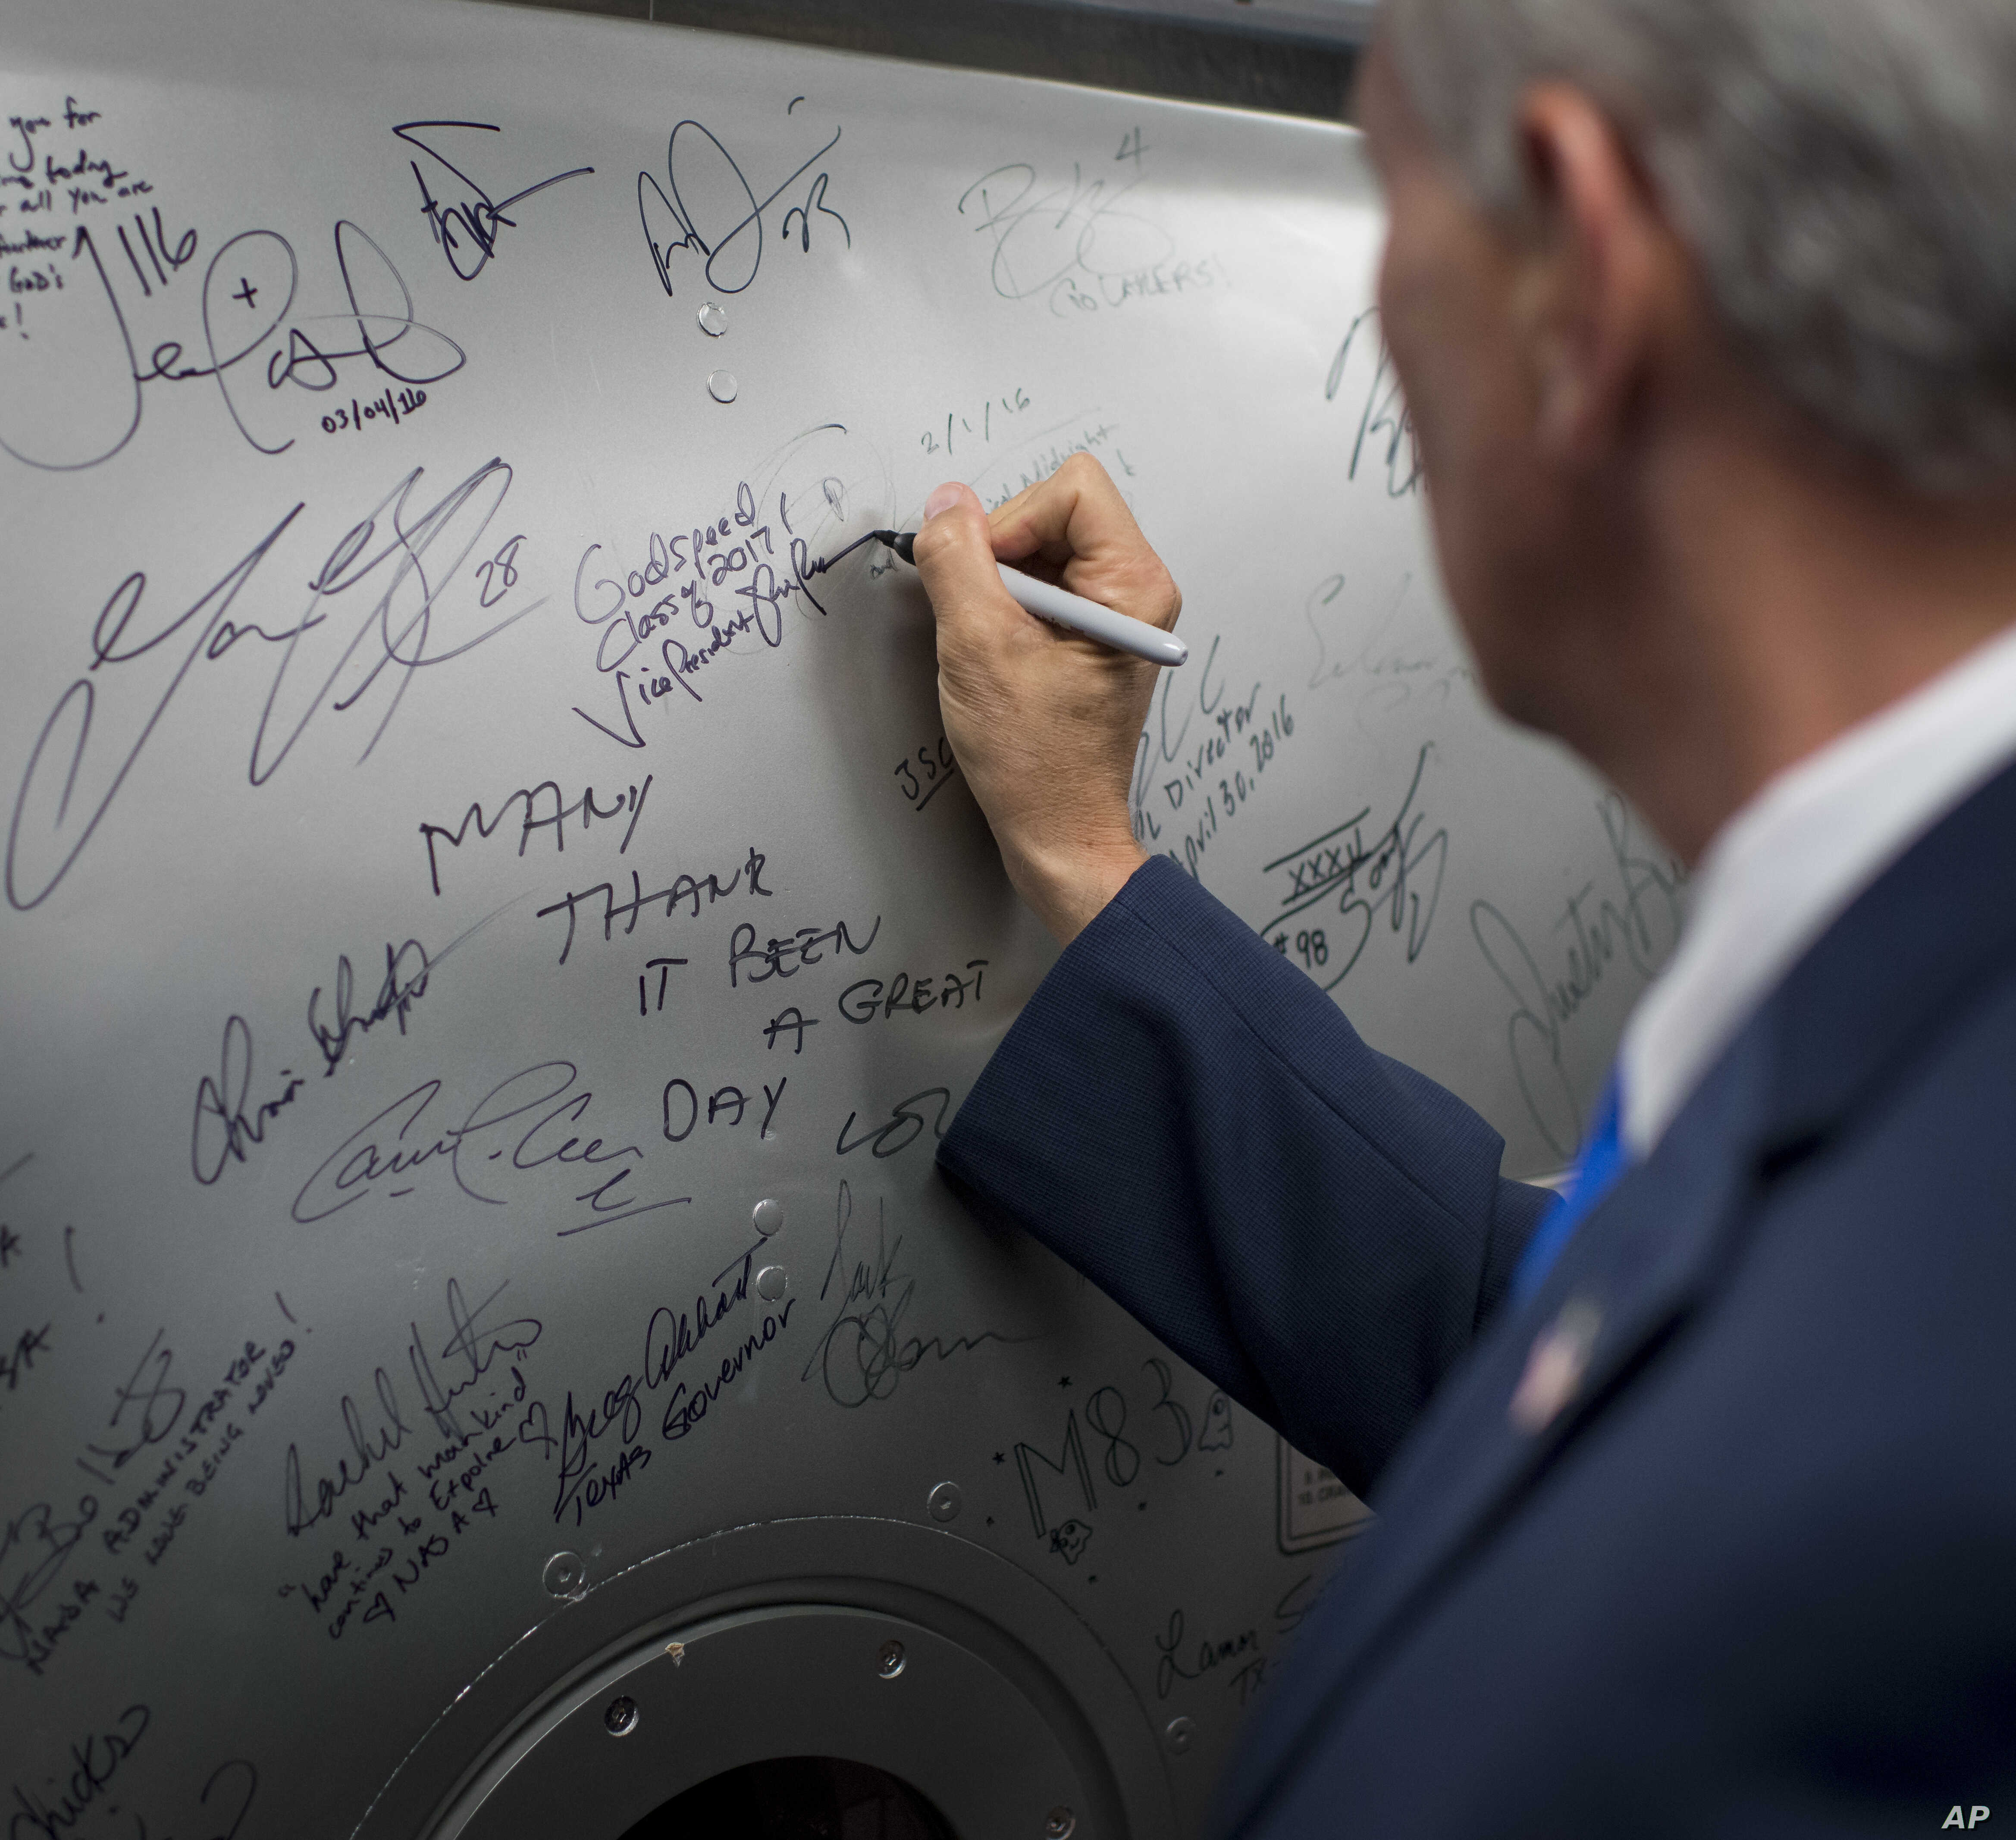 In the tradition of others, Vice President Mike Pence signs a hatch from a space station training module mockup, June 7, 2017, at NASA's Johnson Space Center in Houston, Texas.